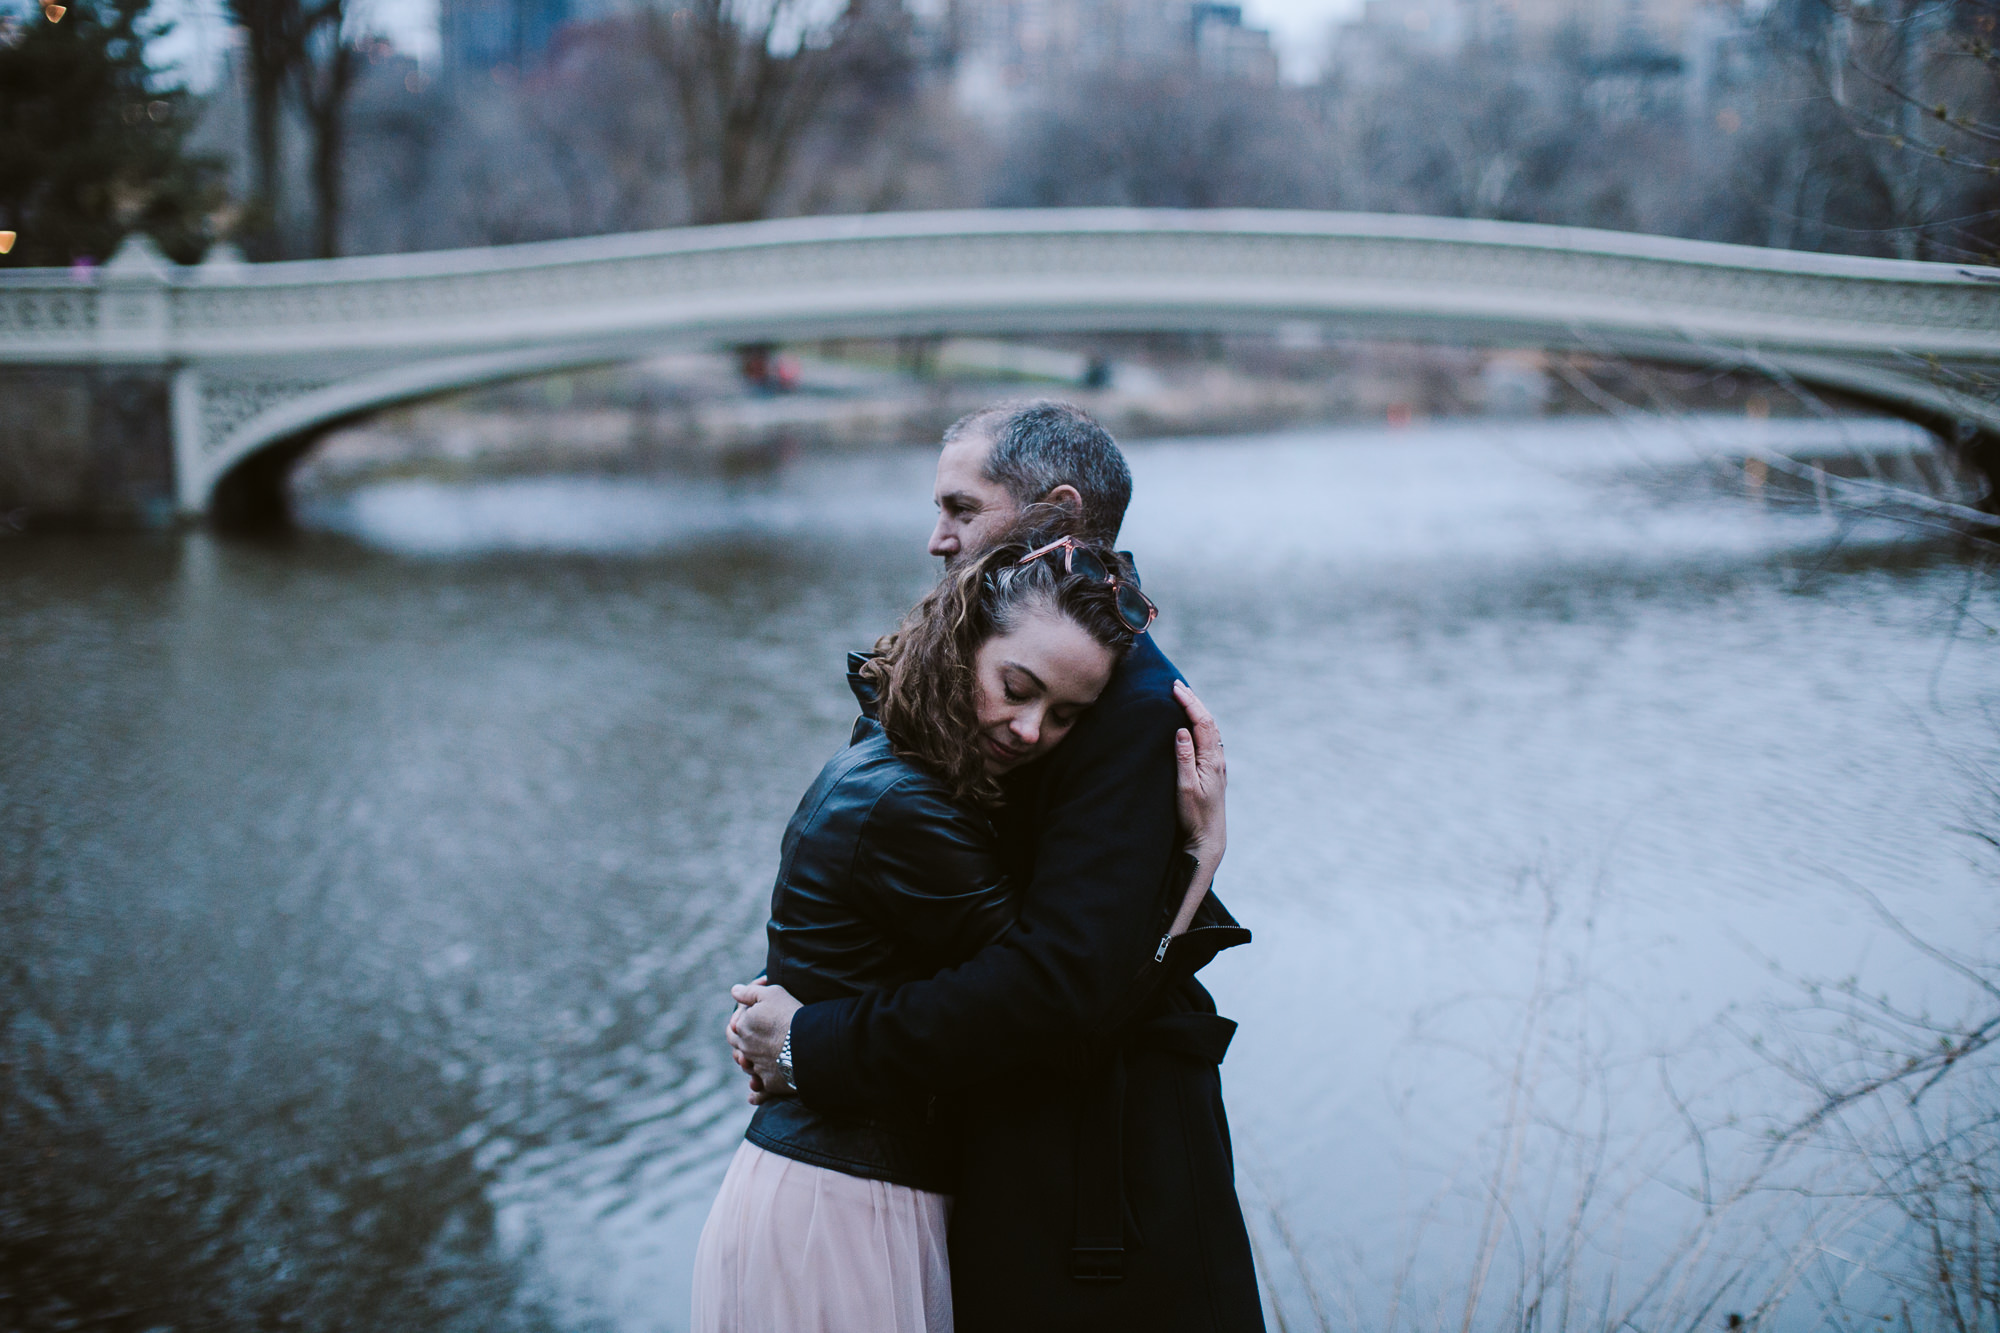 nyc_wedding_photographer_alfonso_flores-49.jpg